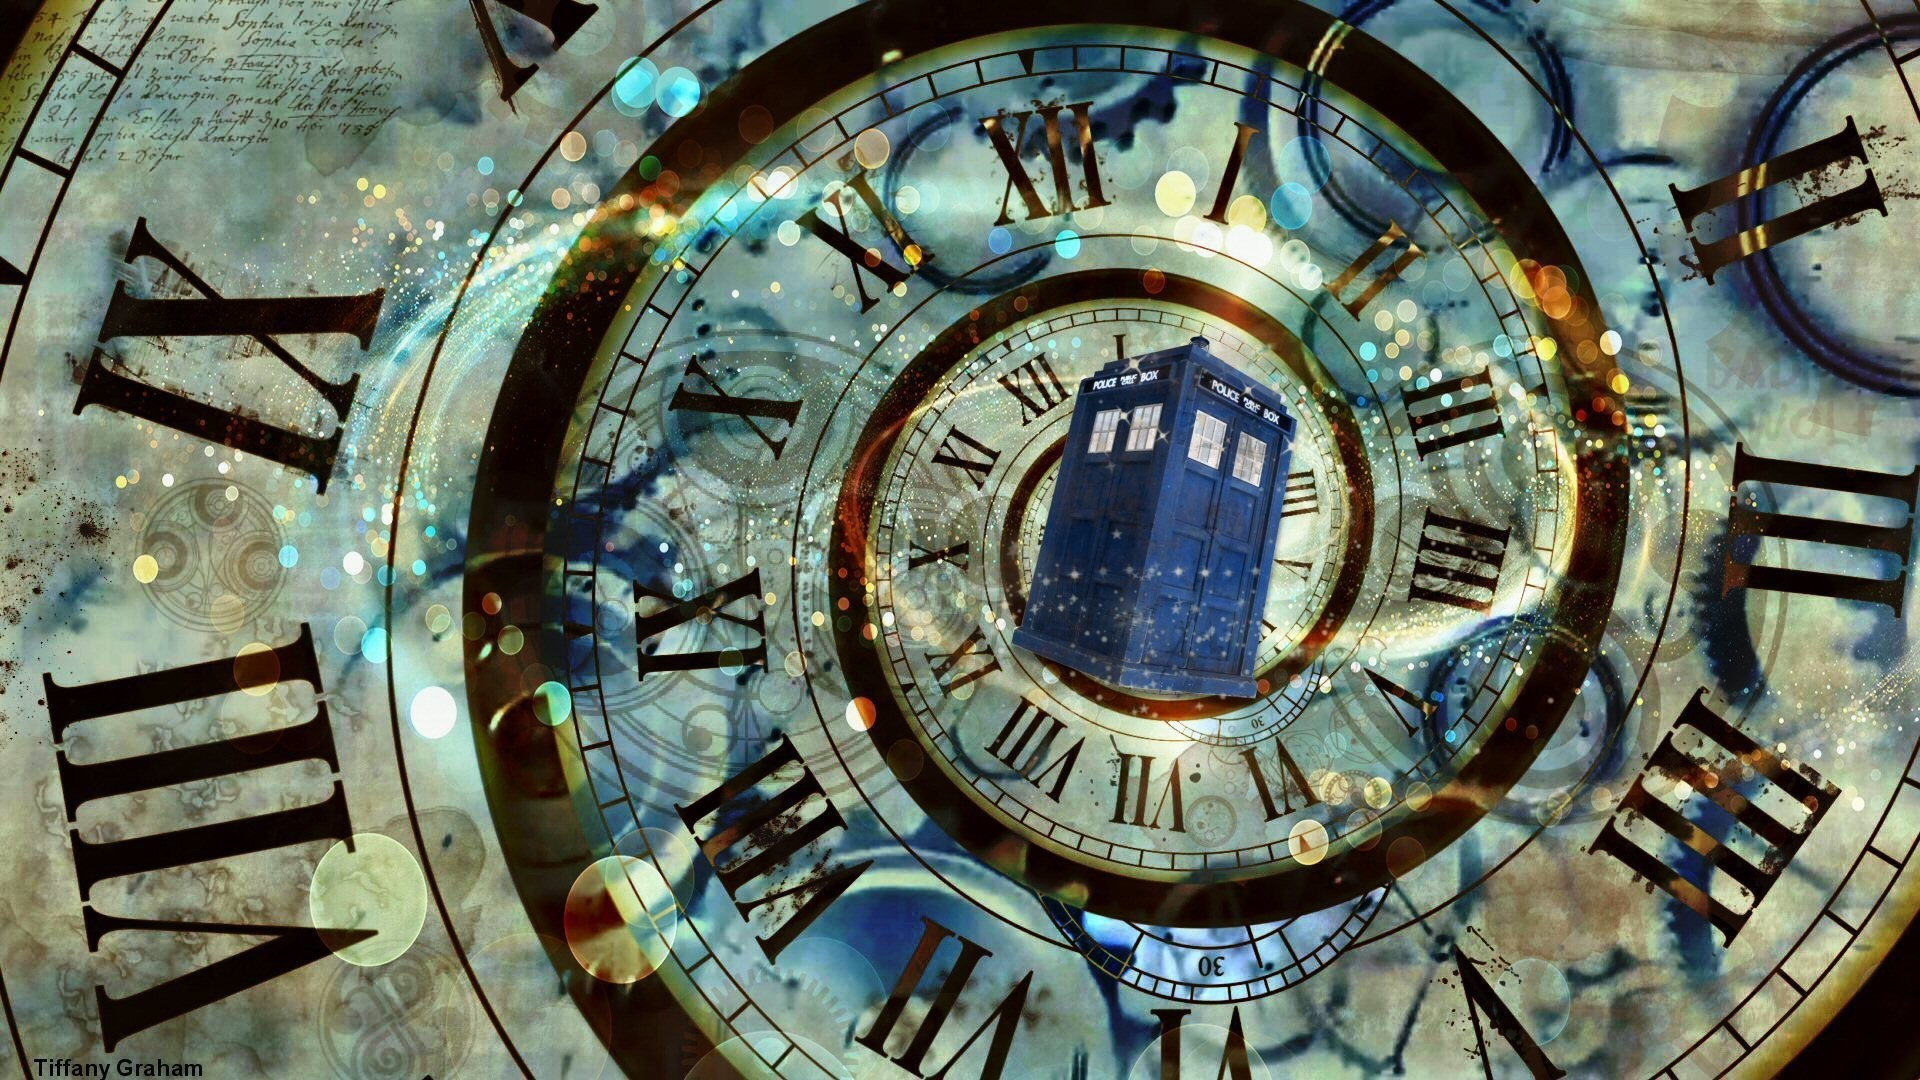 Res: 1920x1080,  Doctor Who Tardis Wallpaper in HQ Resolution